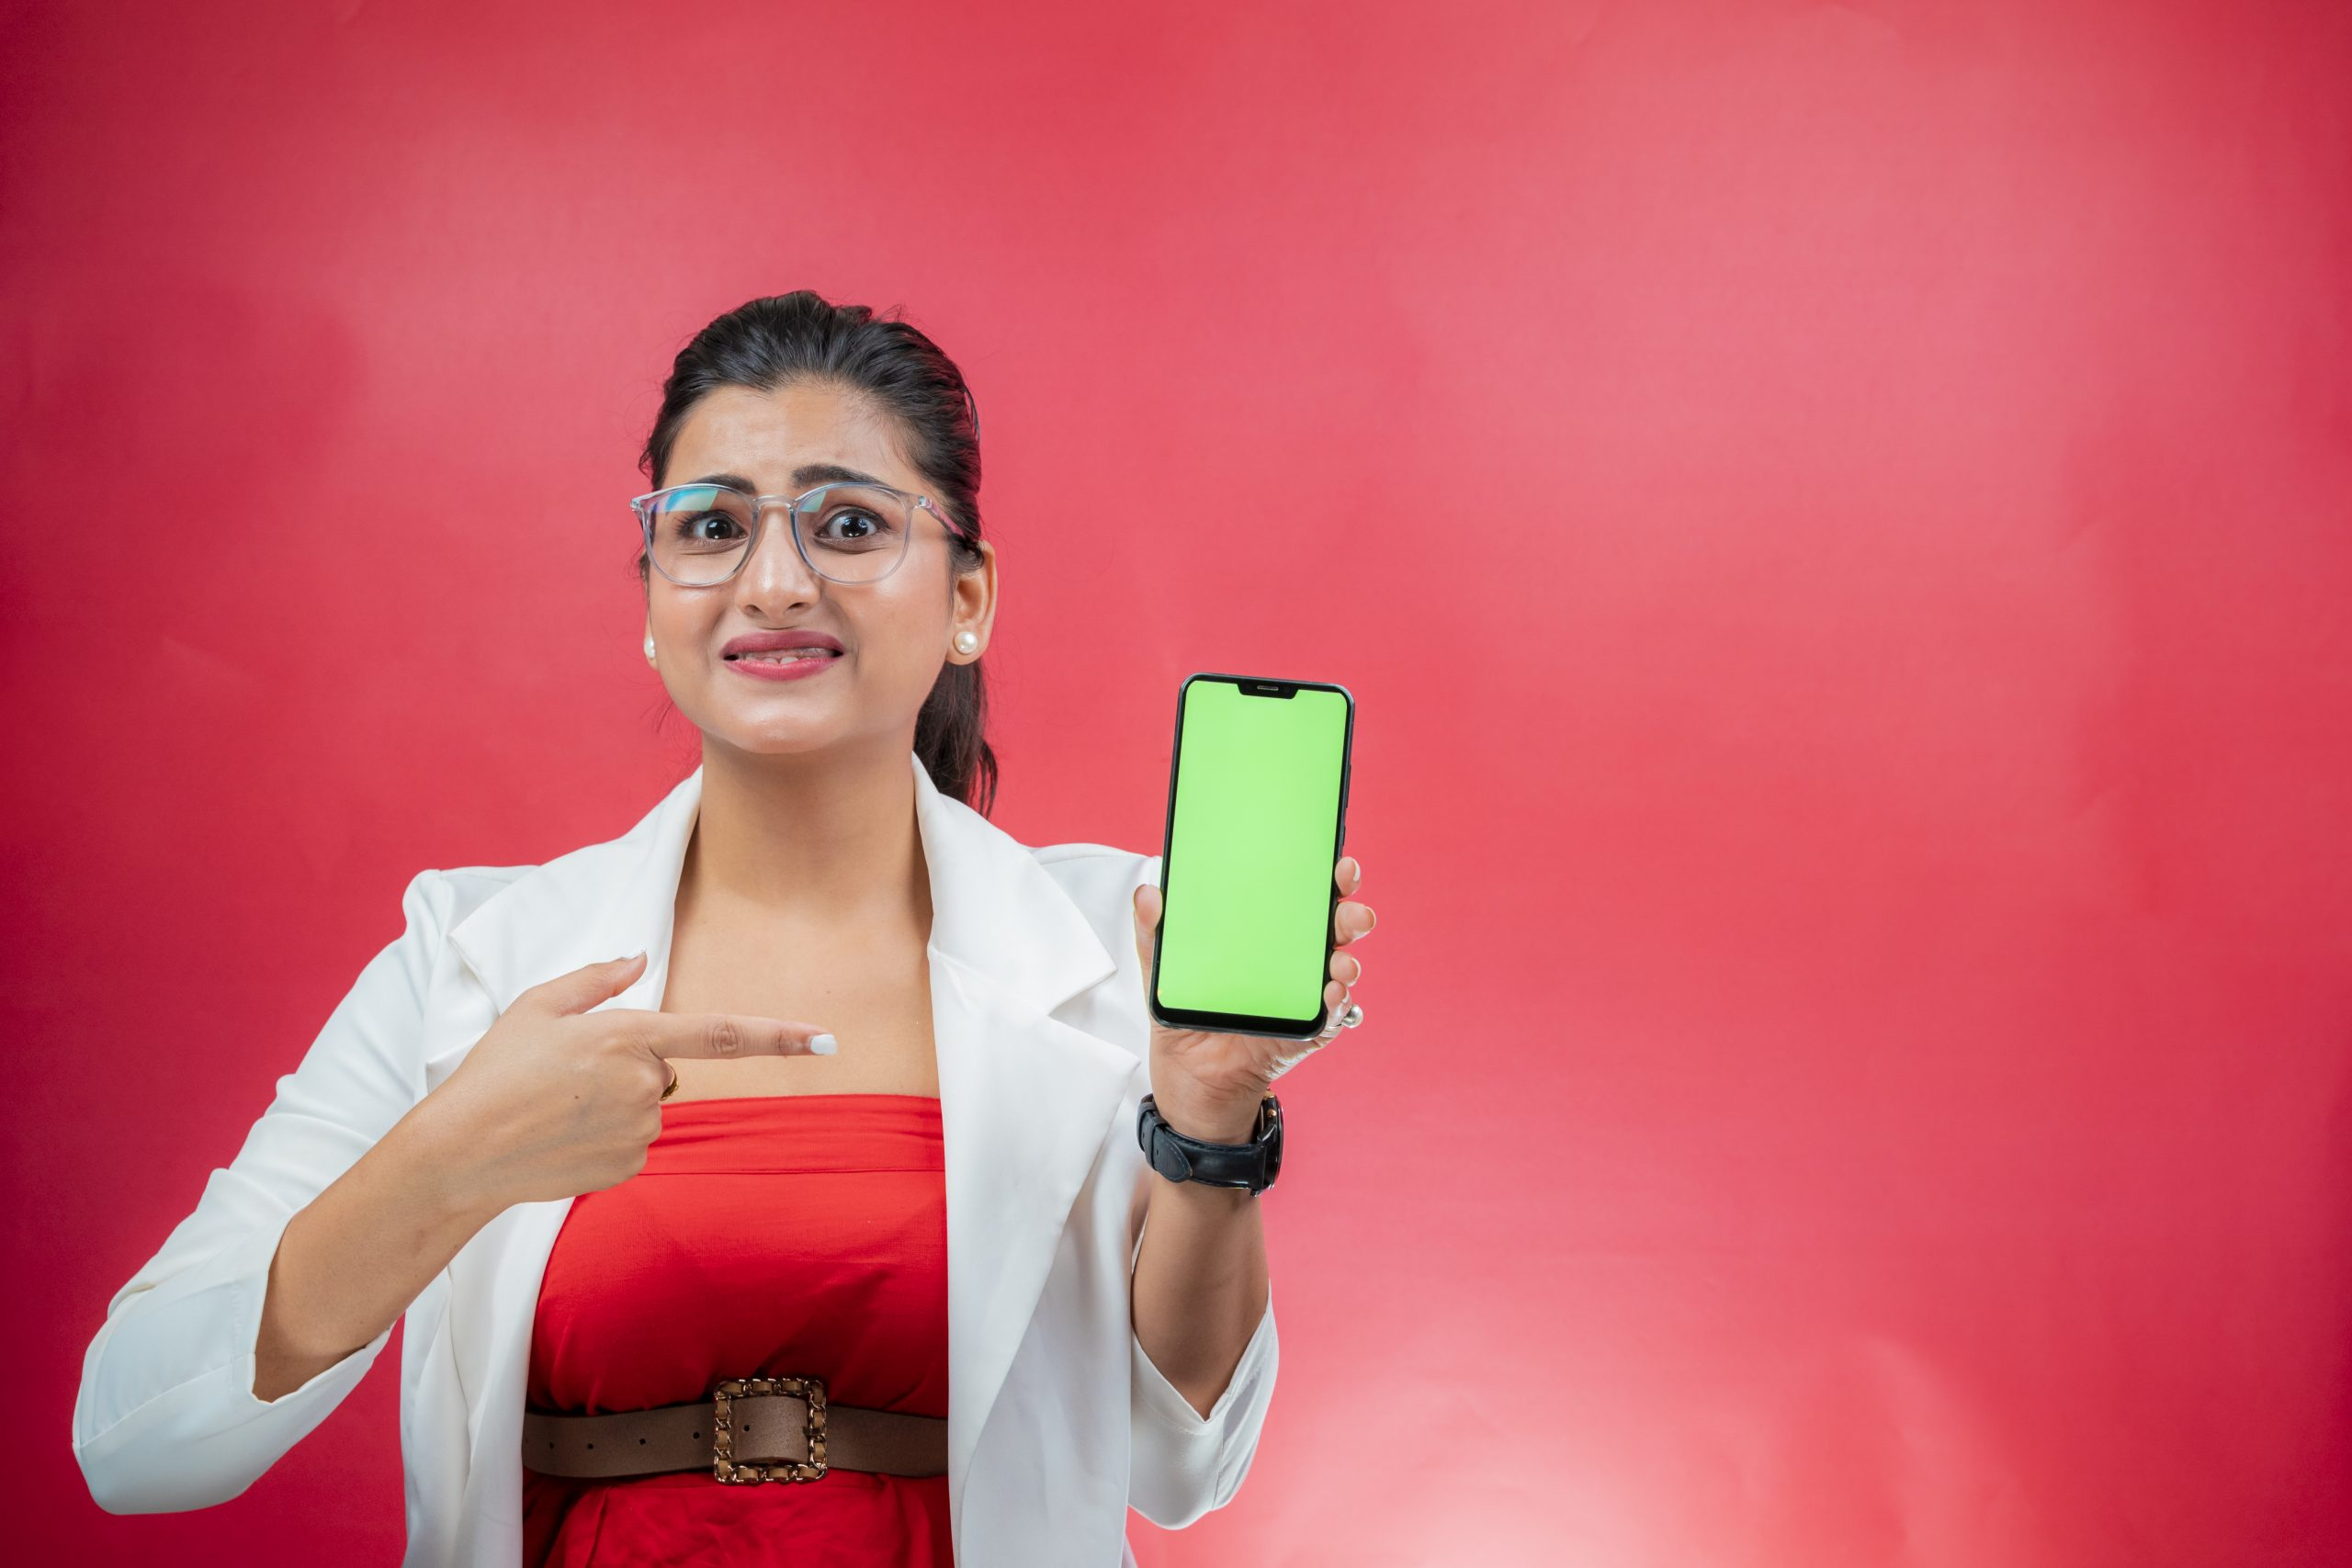 Disgruntled woman pointing towards green screen place holder phone